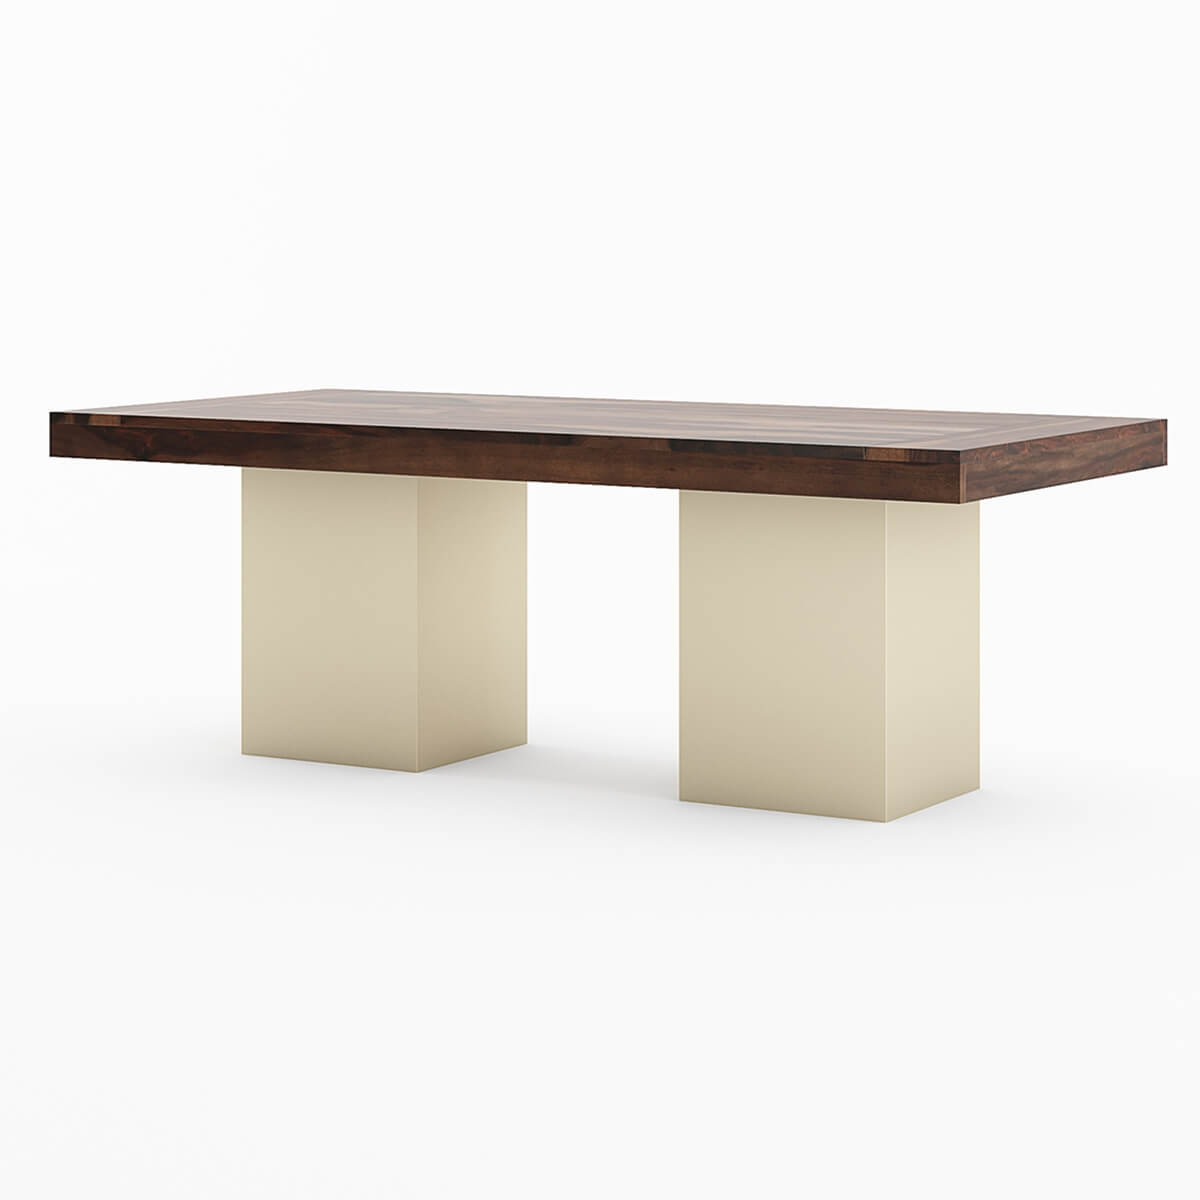 120 Sierra Large Solid Wood Sutton Pedestal Modern Conference Table